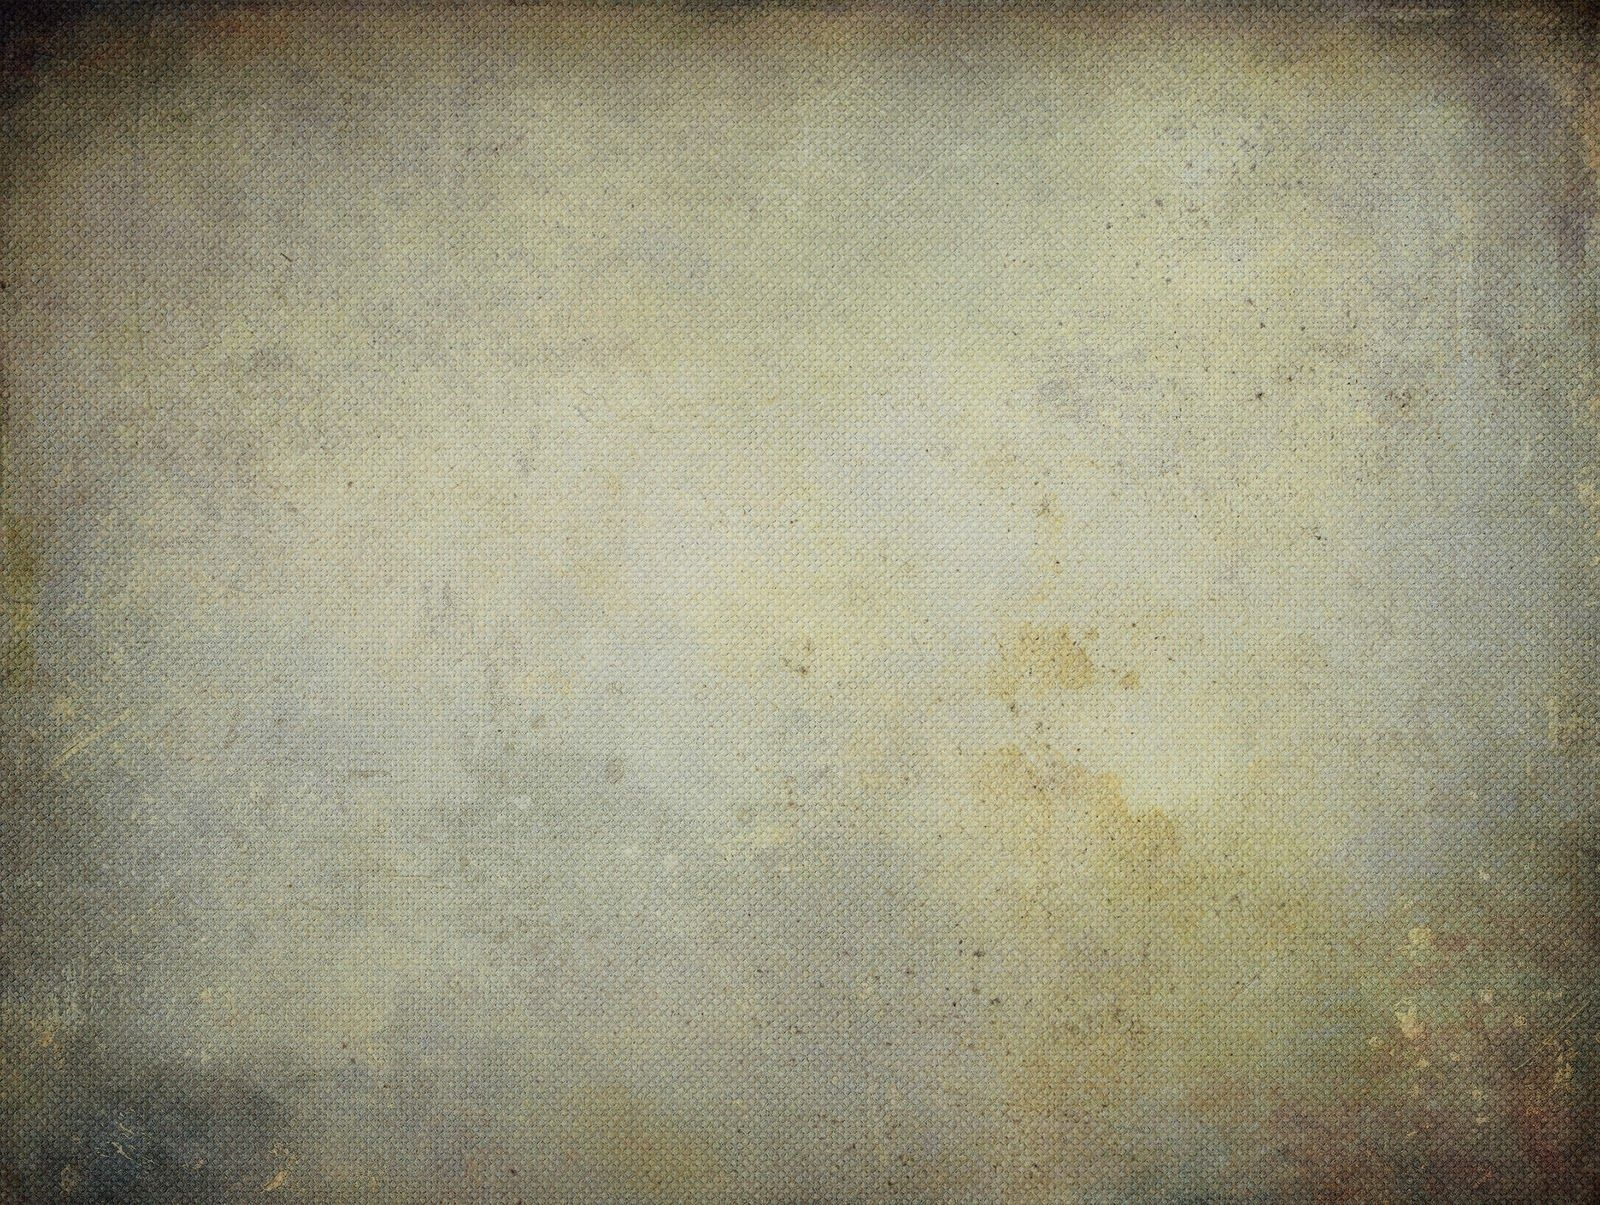 Used Canvas Texture Set And Sample Image Canvas Texture Texture